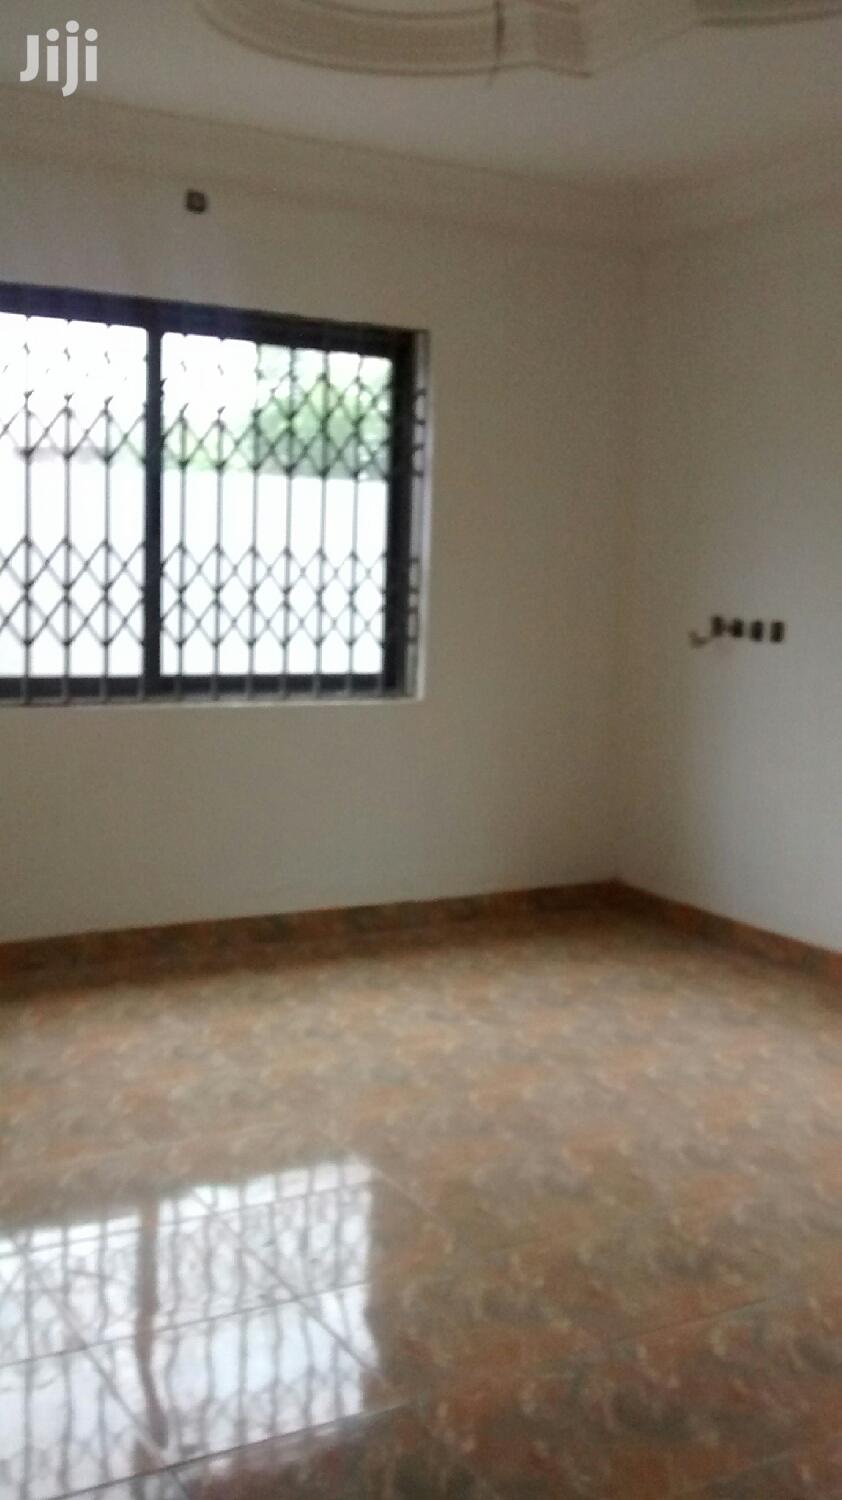 3 Bedrooms House For Sale At Lakeside Estate | Houses & Apartments For Sale for sale in East Legon, Greater Accra, Ghana